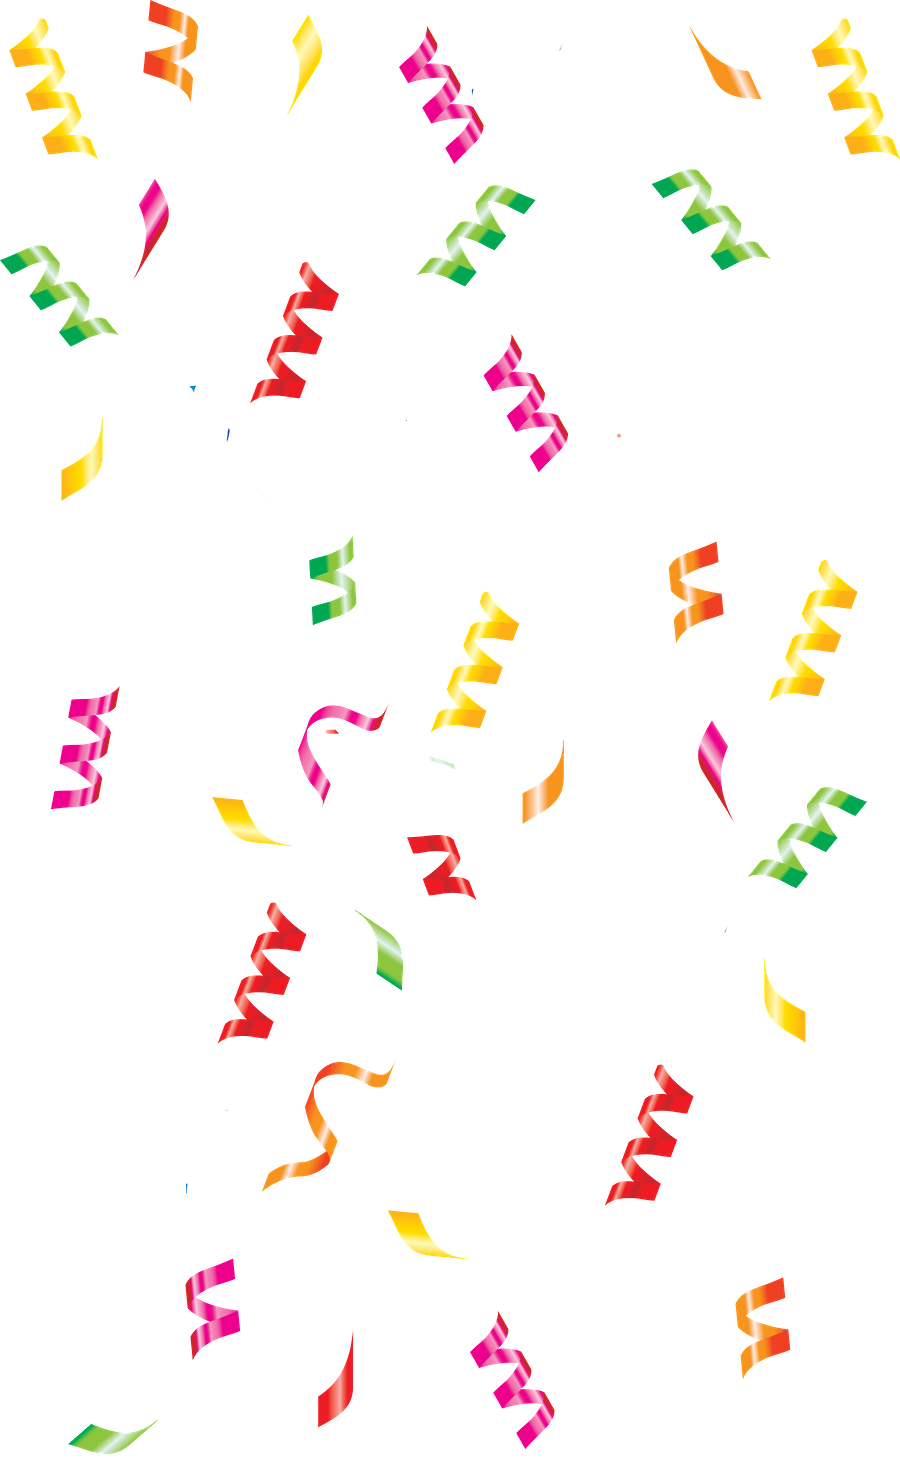 Confete clipart svg royalty free download confetti paper | PARTY & CELEBRATION CLIPART in 2019 | Party, Confetti svg royalty free download